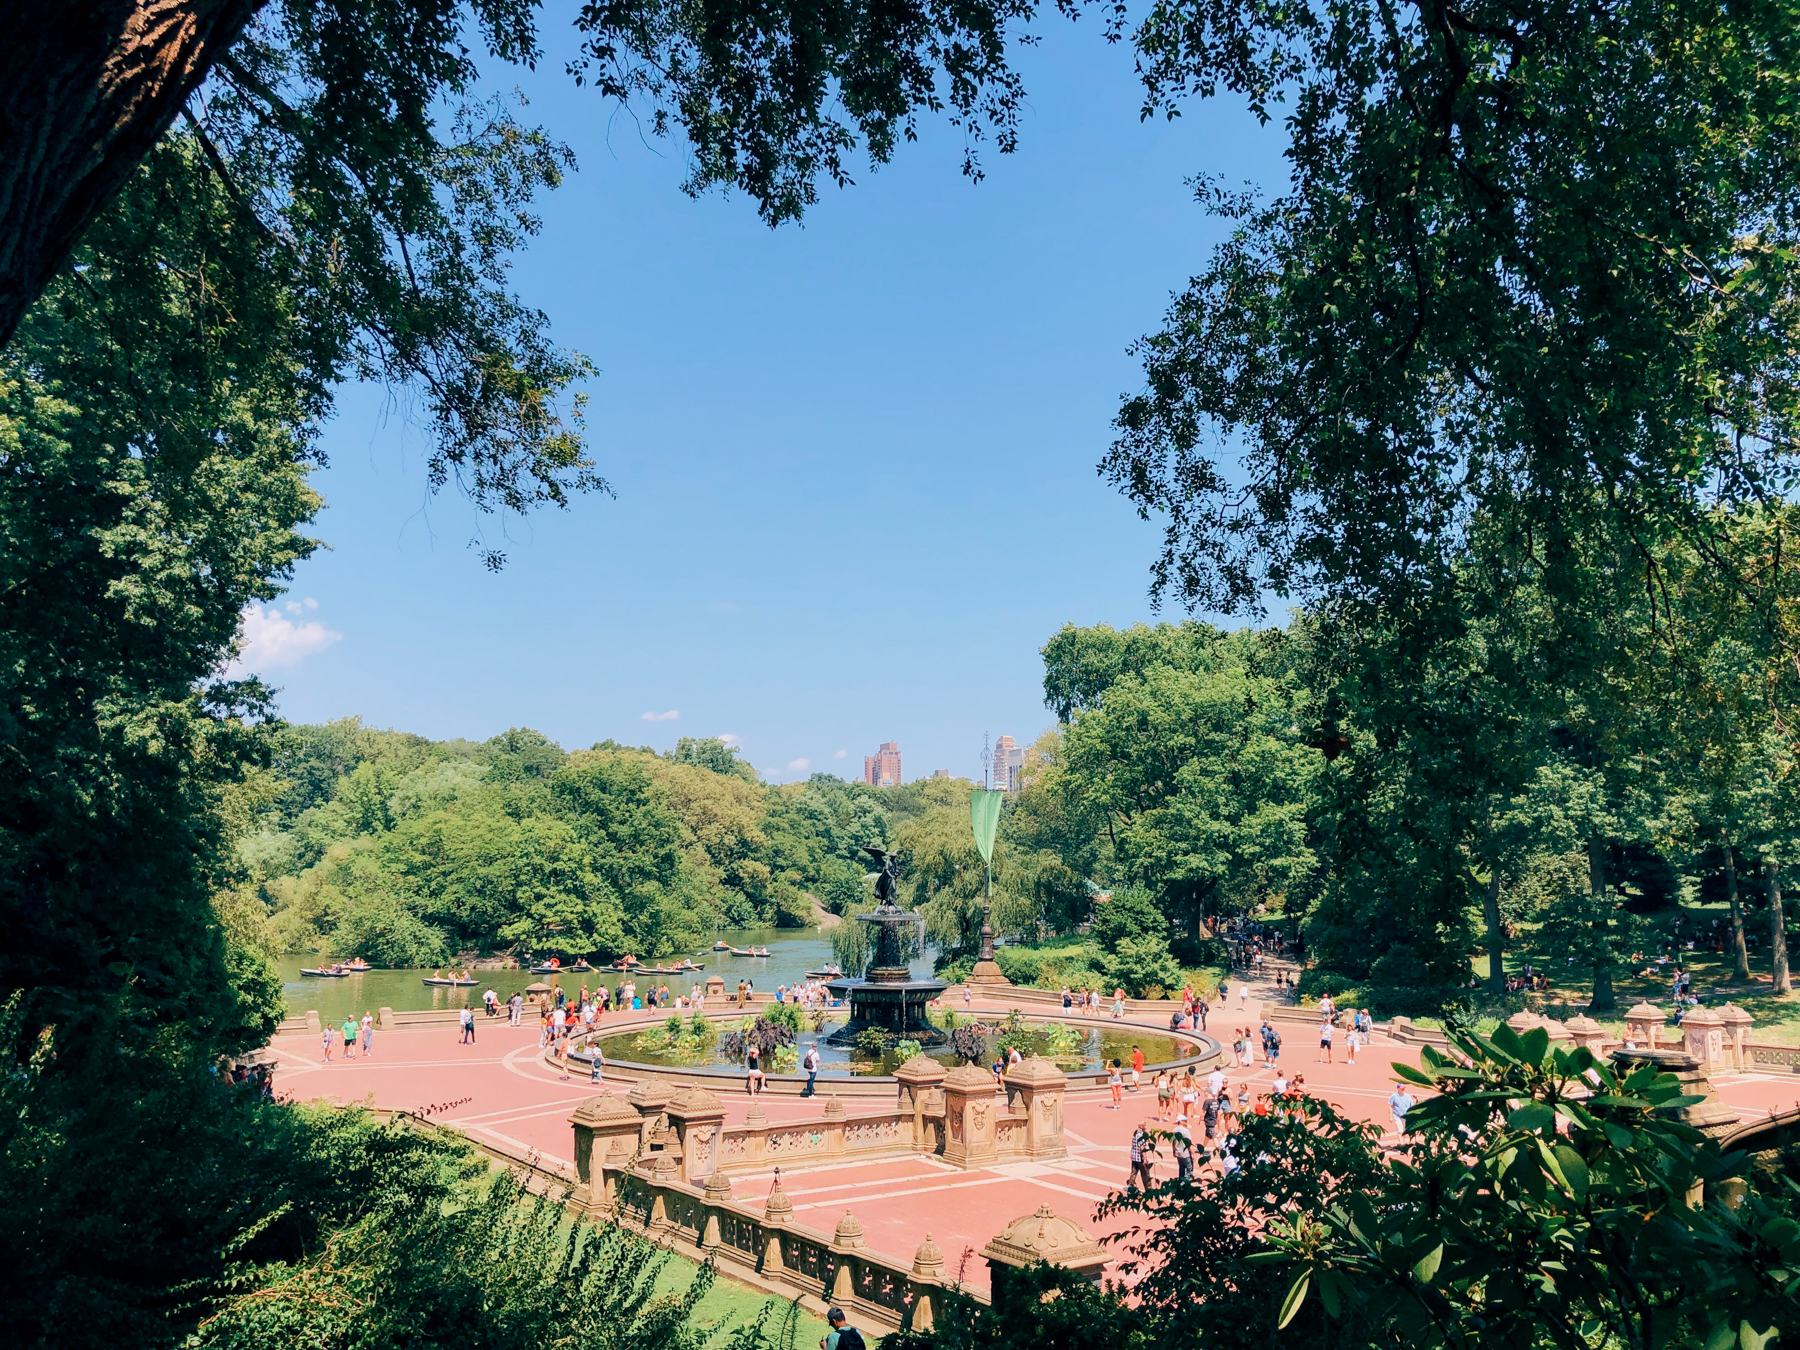 The famous Bethesda Fountain in Central Park